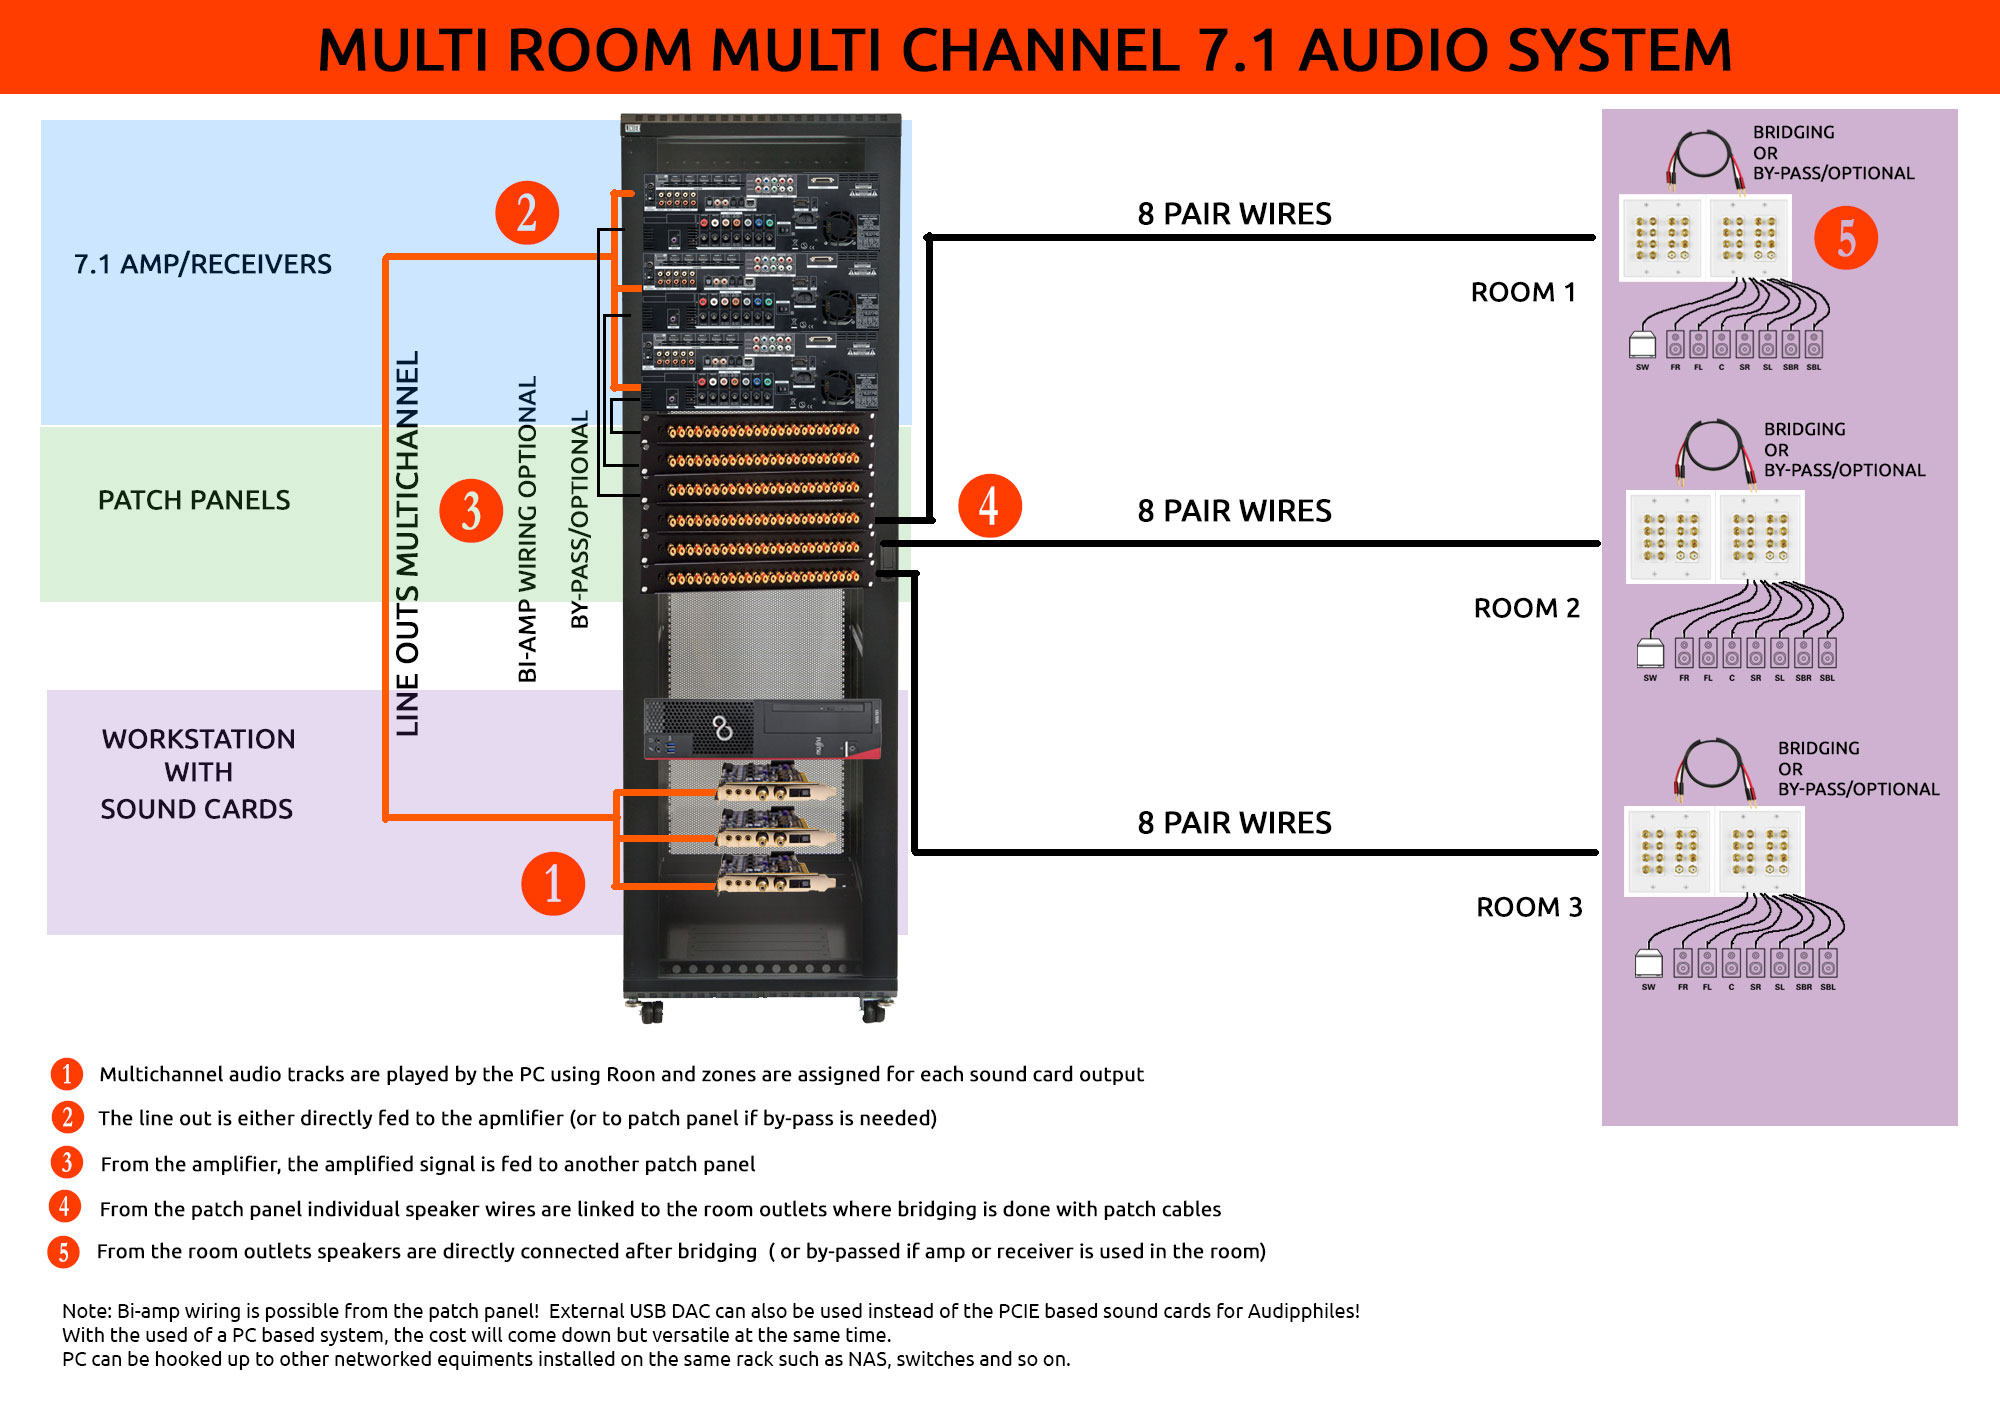 hight resolution of multii room multi channel setup is very rarely done or maybe non existent so i have to come up with this myself i have made a sketch diagram for what i am